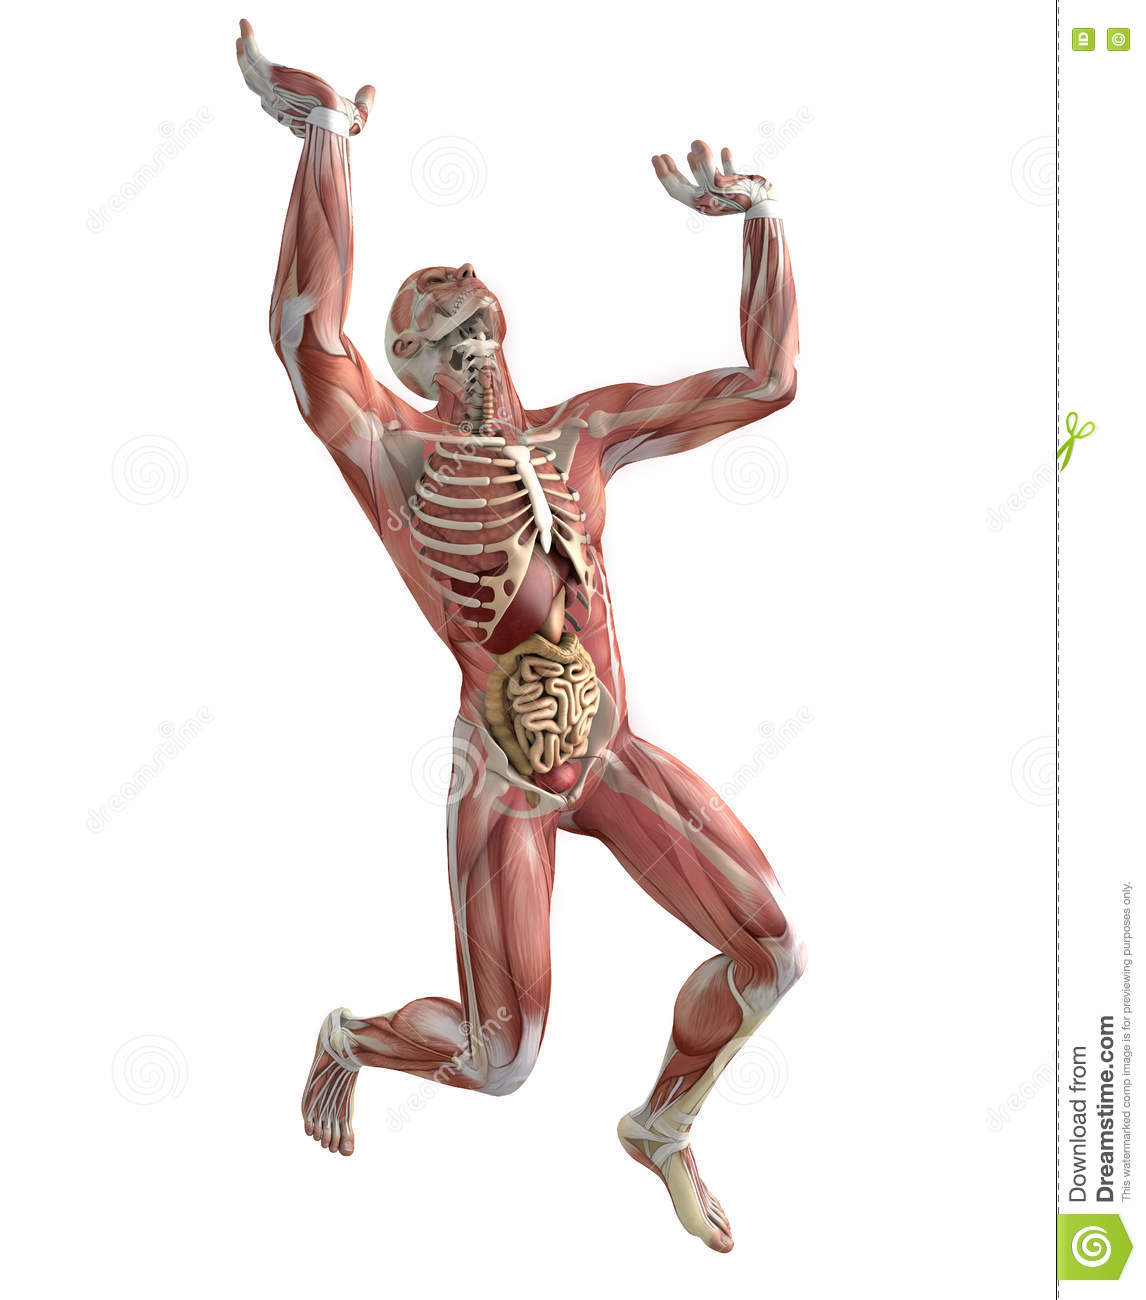 Human Body Muscular System Weightlifting Lifting Anatomy Stock Illustration